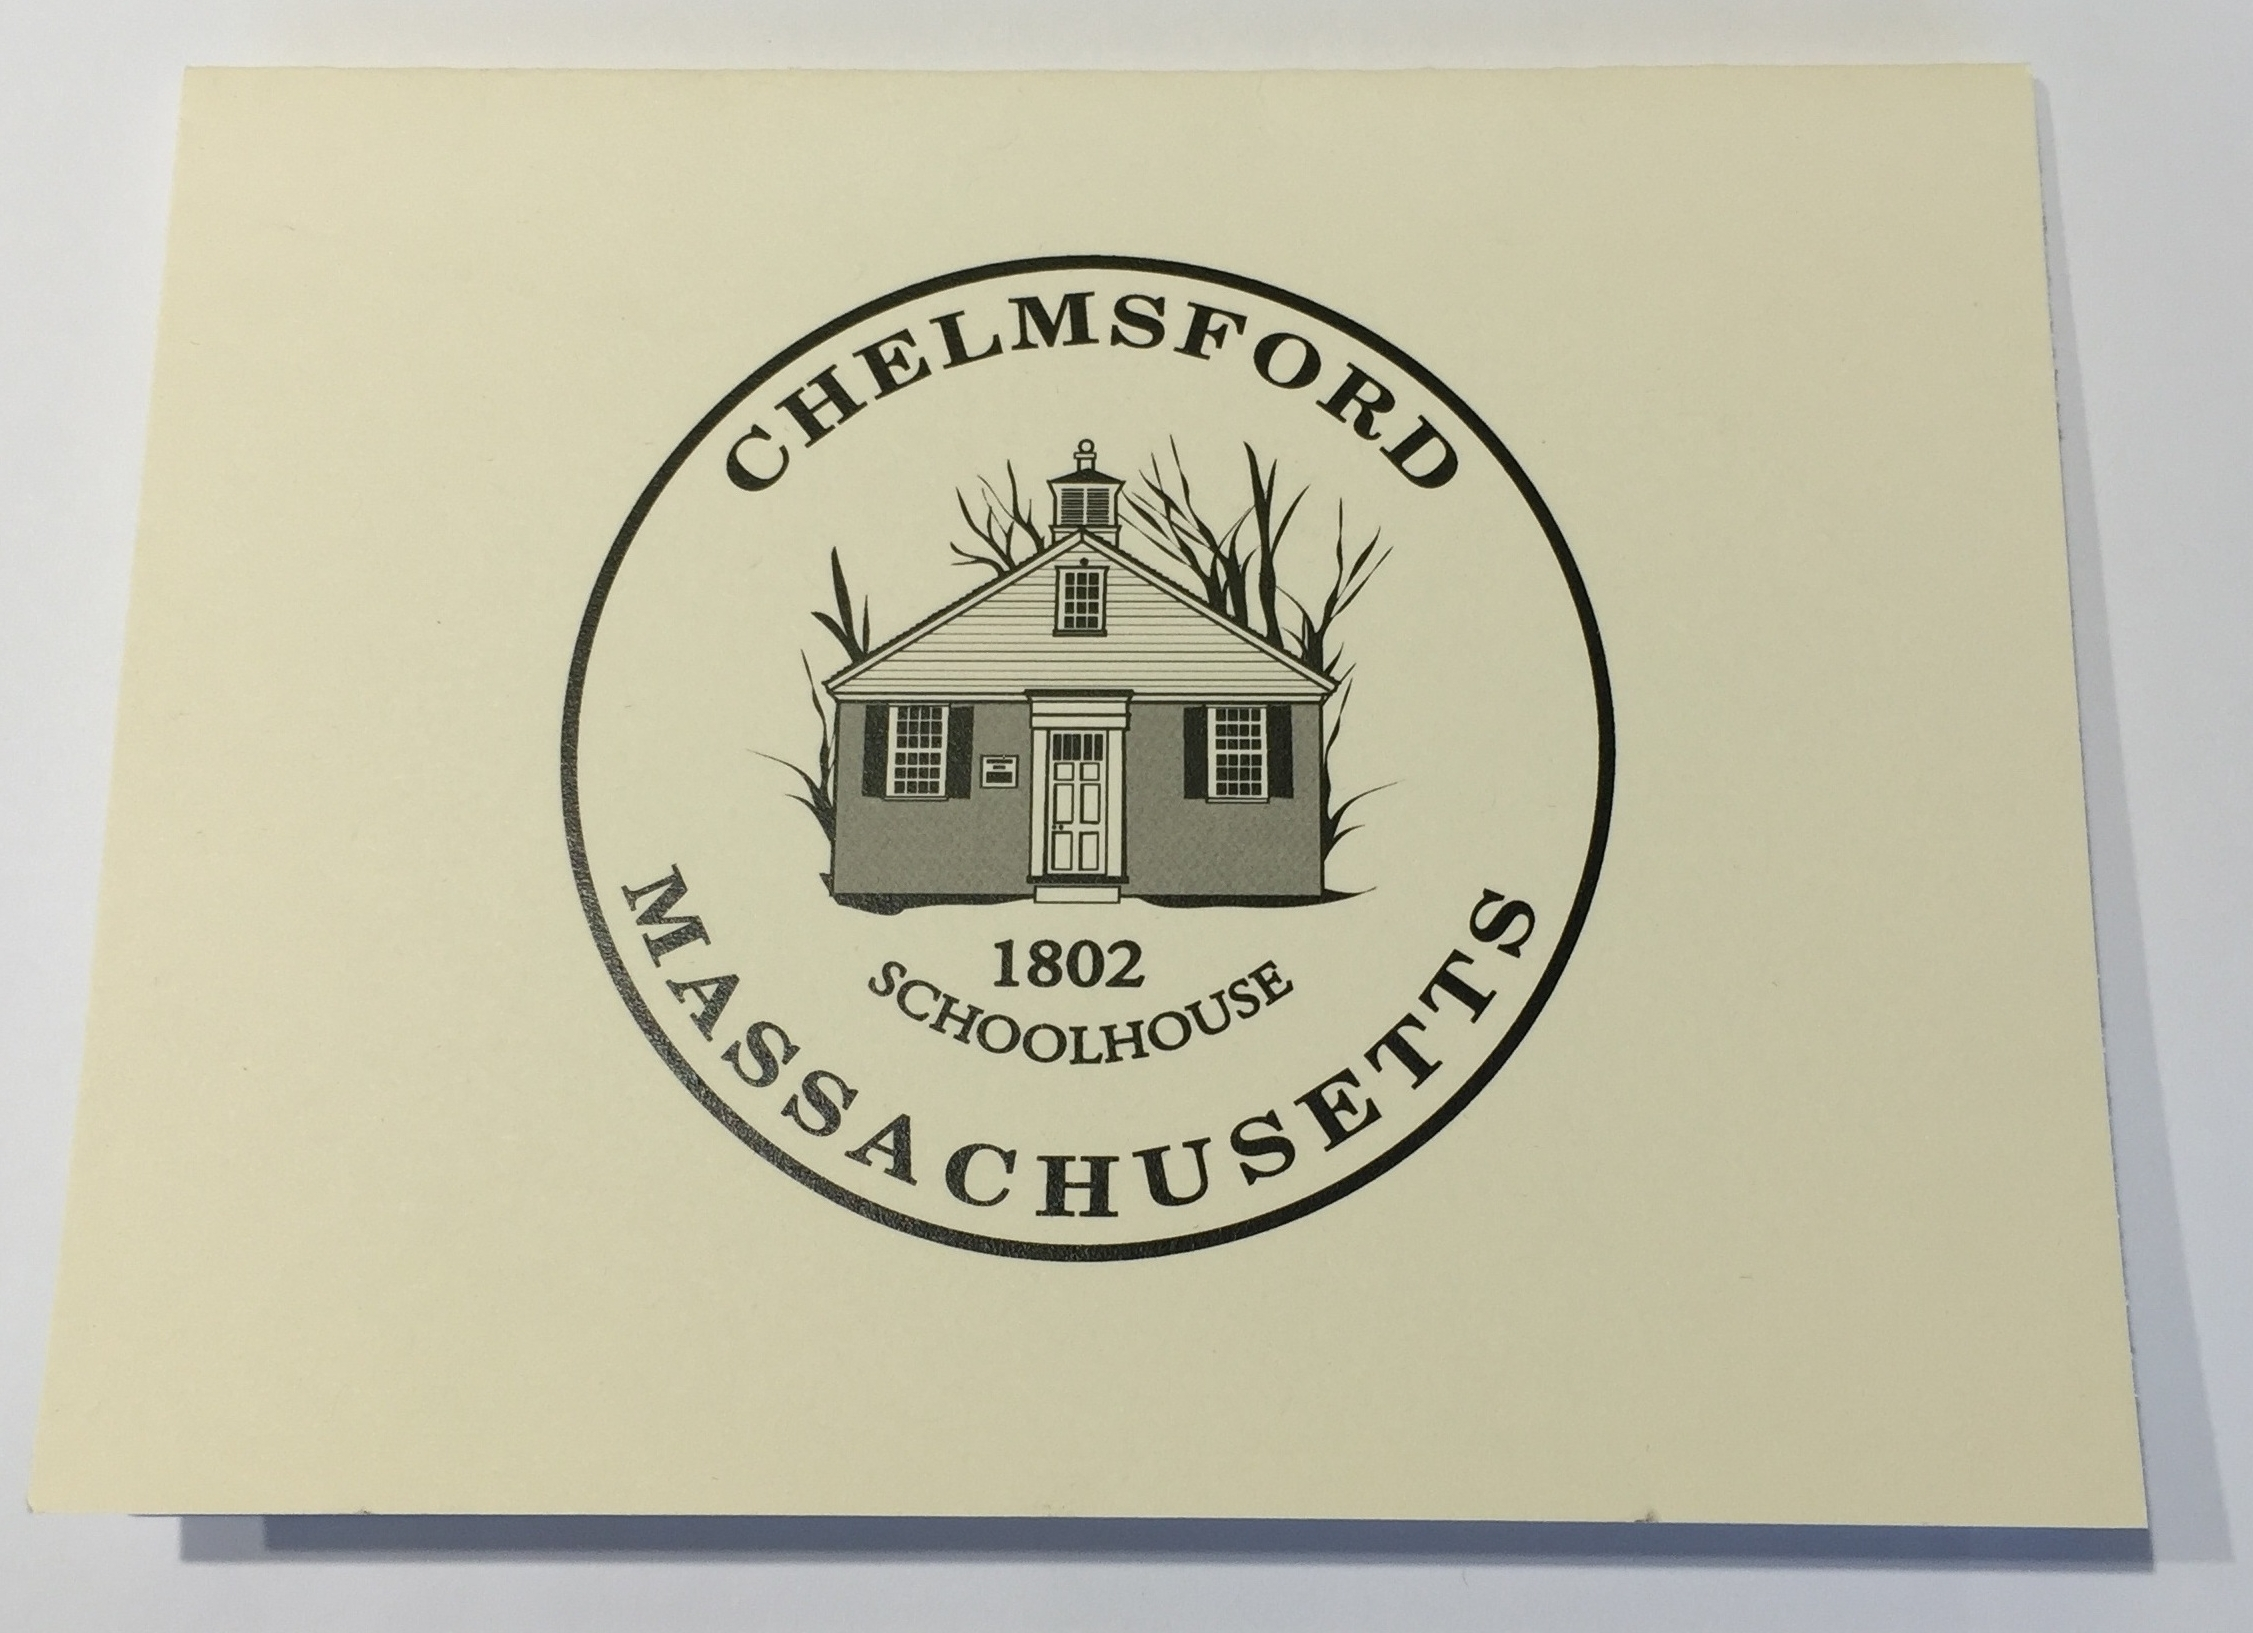 Chelmsford Note Cards $1 each or 4 for $3.50